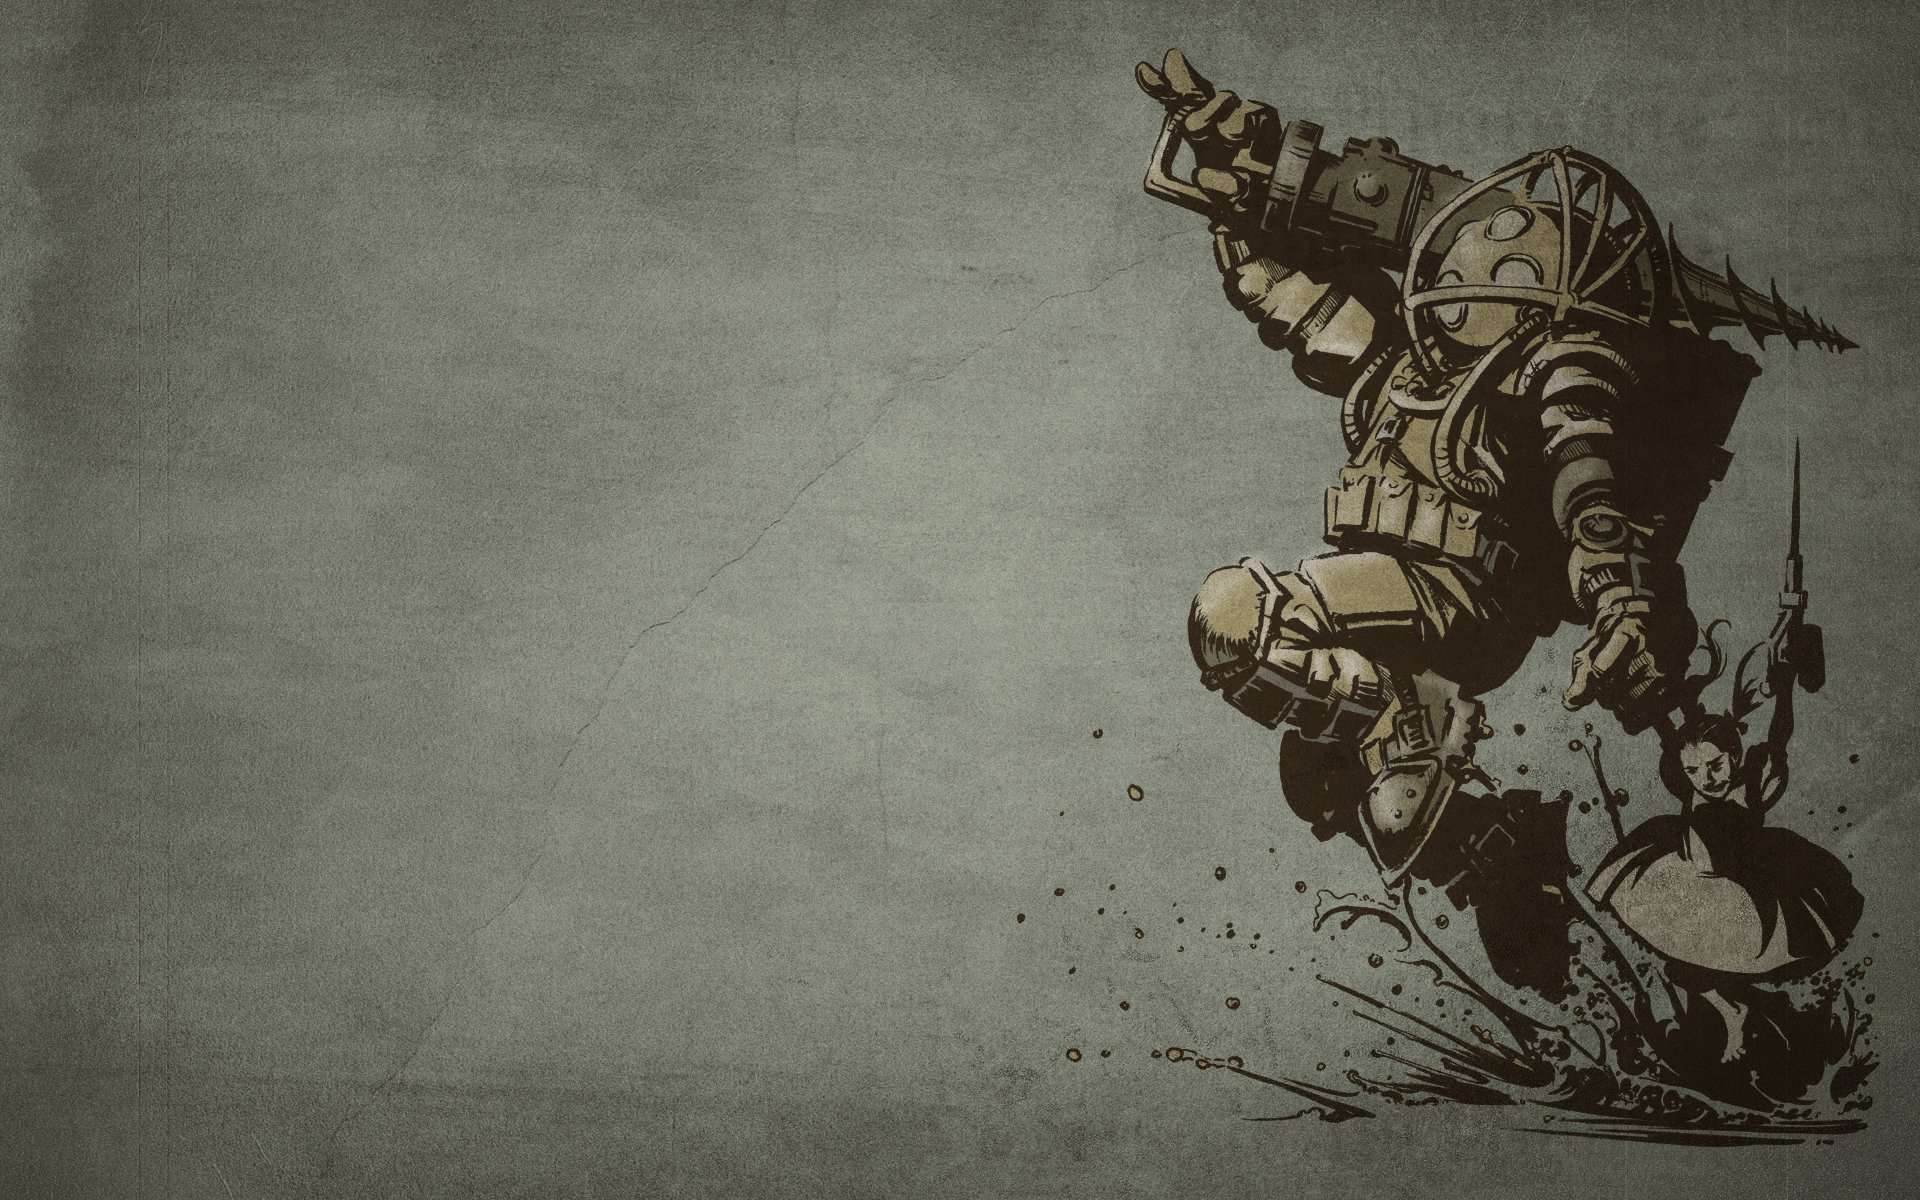 91 Bioshock HD Wallpapers